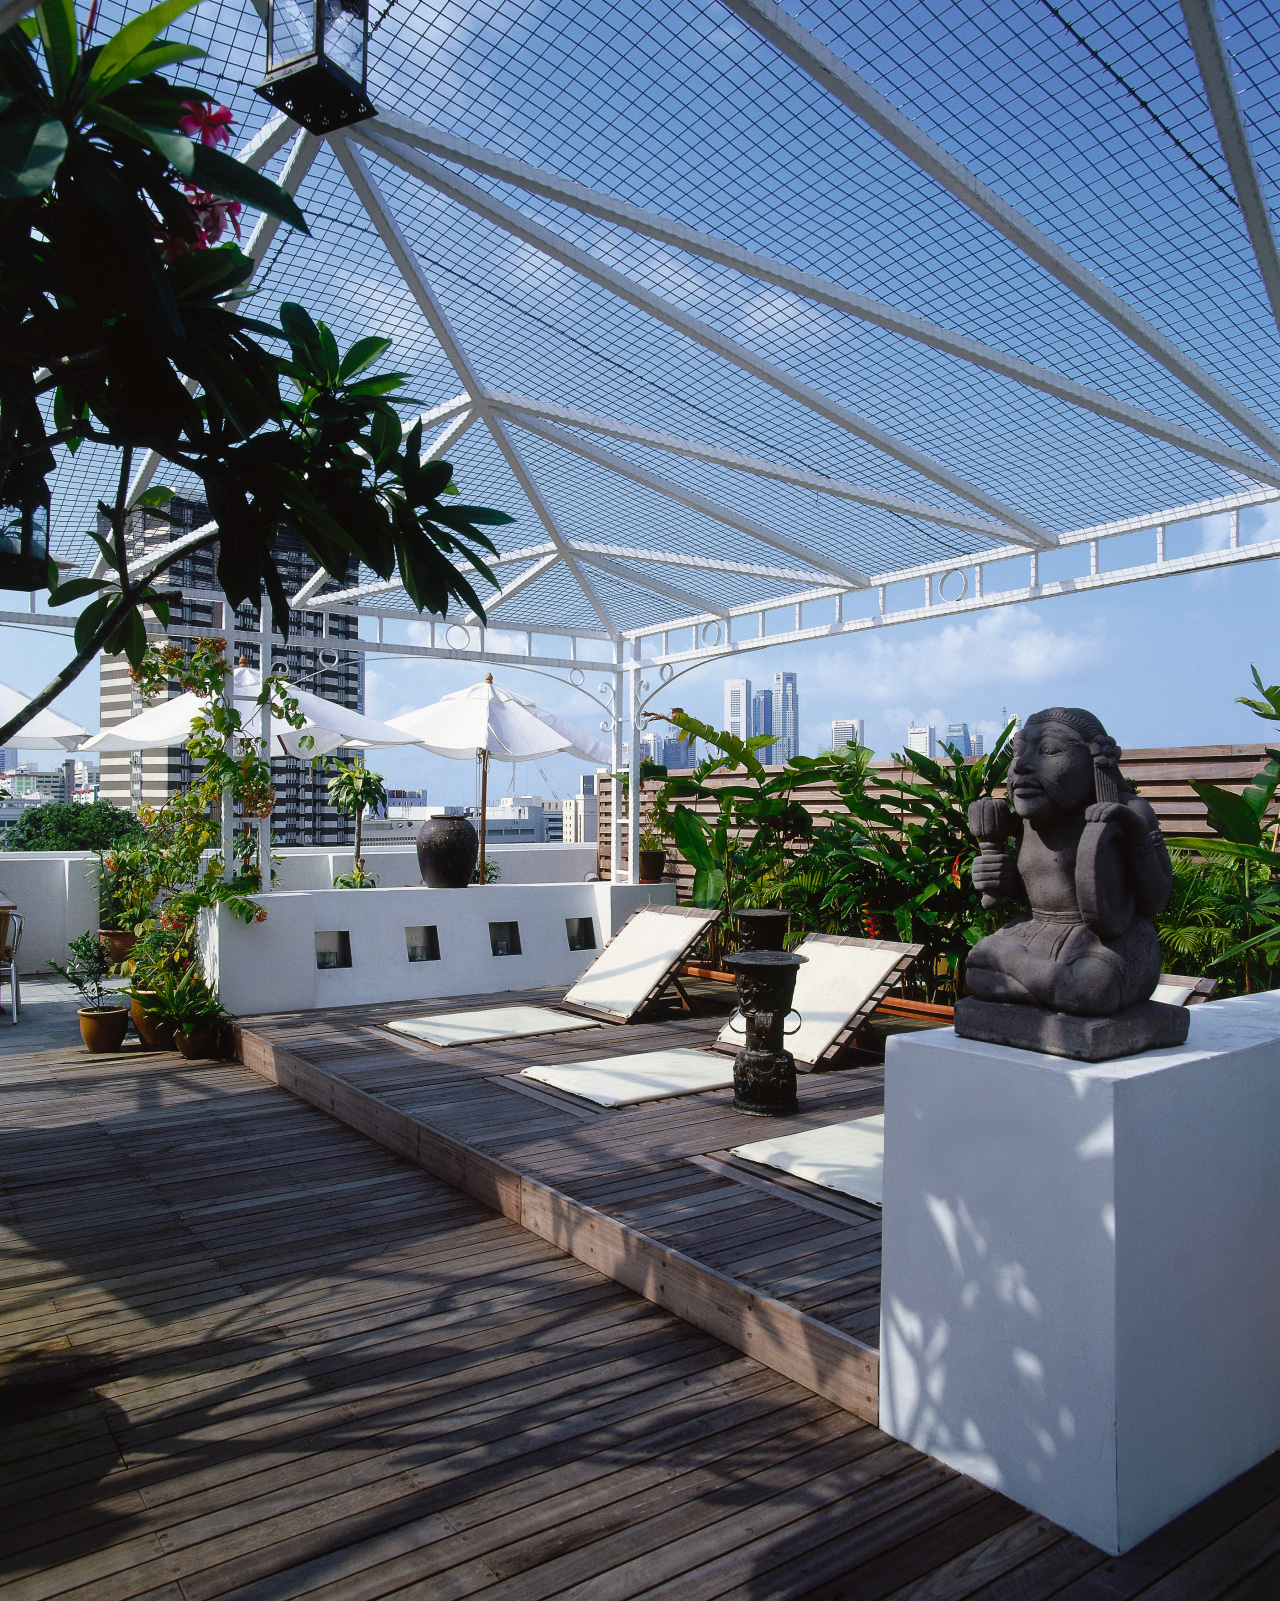 View of the roof-top timber deck architecture, arecales, greenhouse, house, outdoor structure, palm tree, plant, real estate, roof, tree, walkway, black, teal